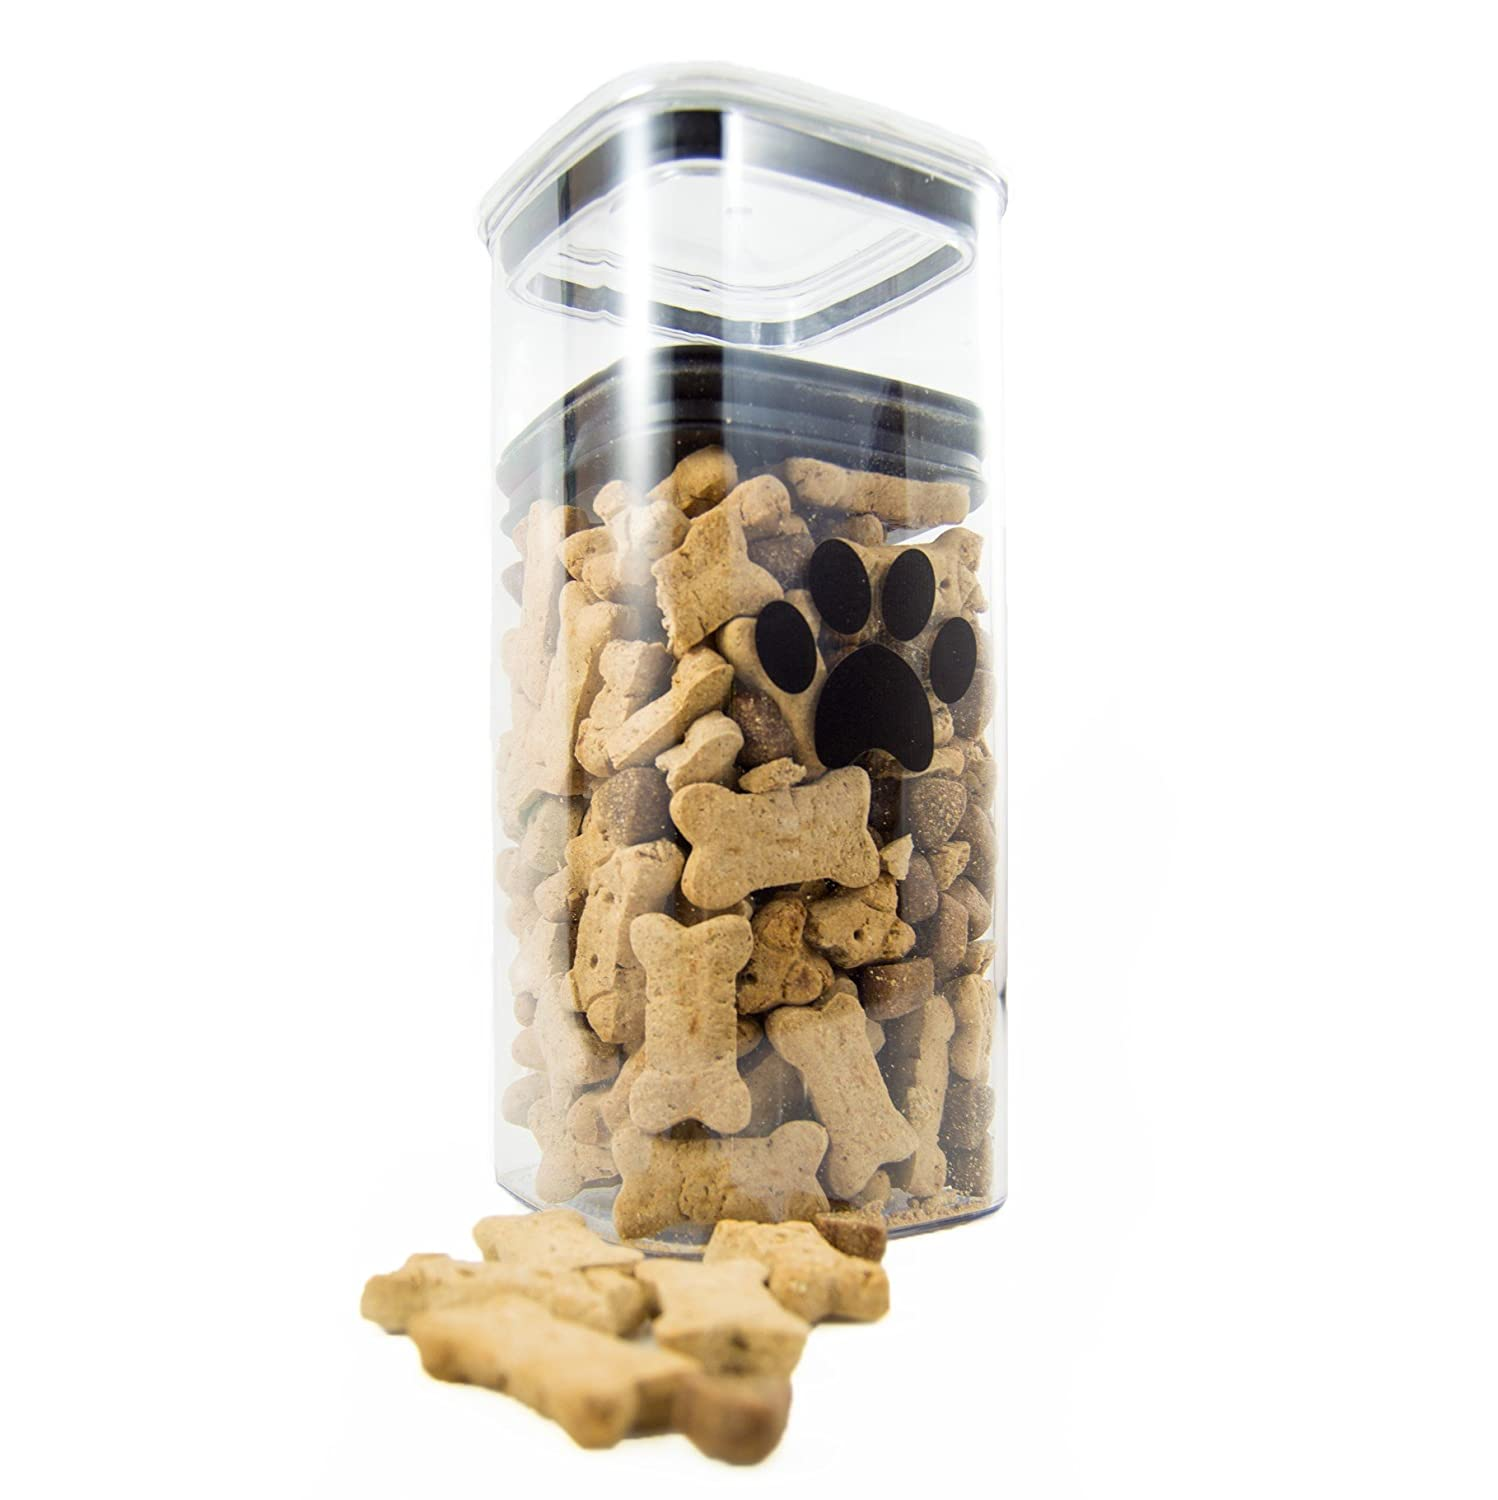 Airscape Pet Food and Treat Storage Container Patented Airtight Lid Preserves Food Freshness Clear Plastic 96 fl. oz